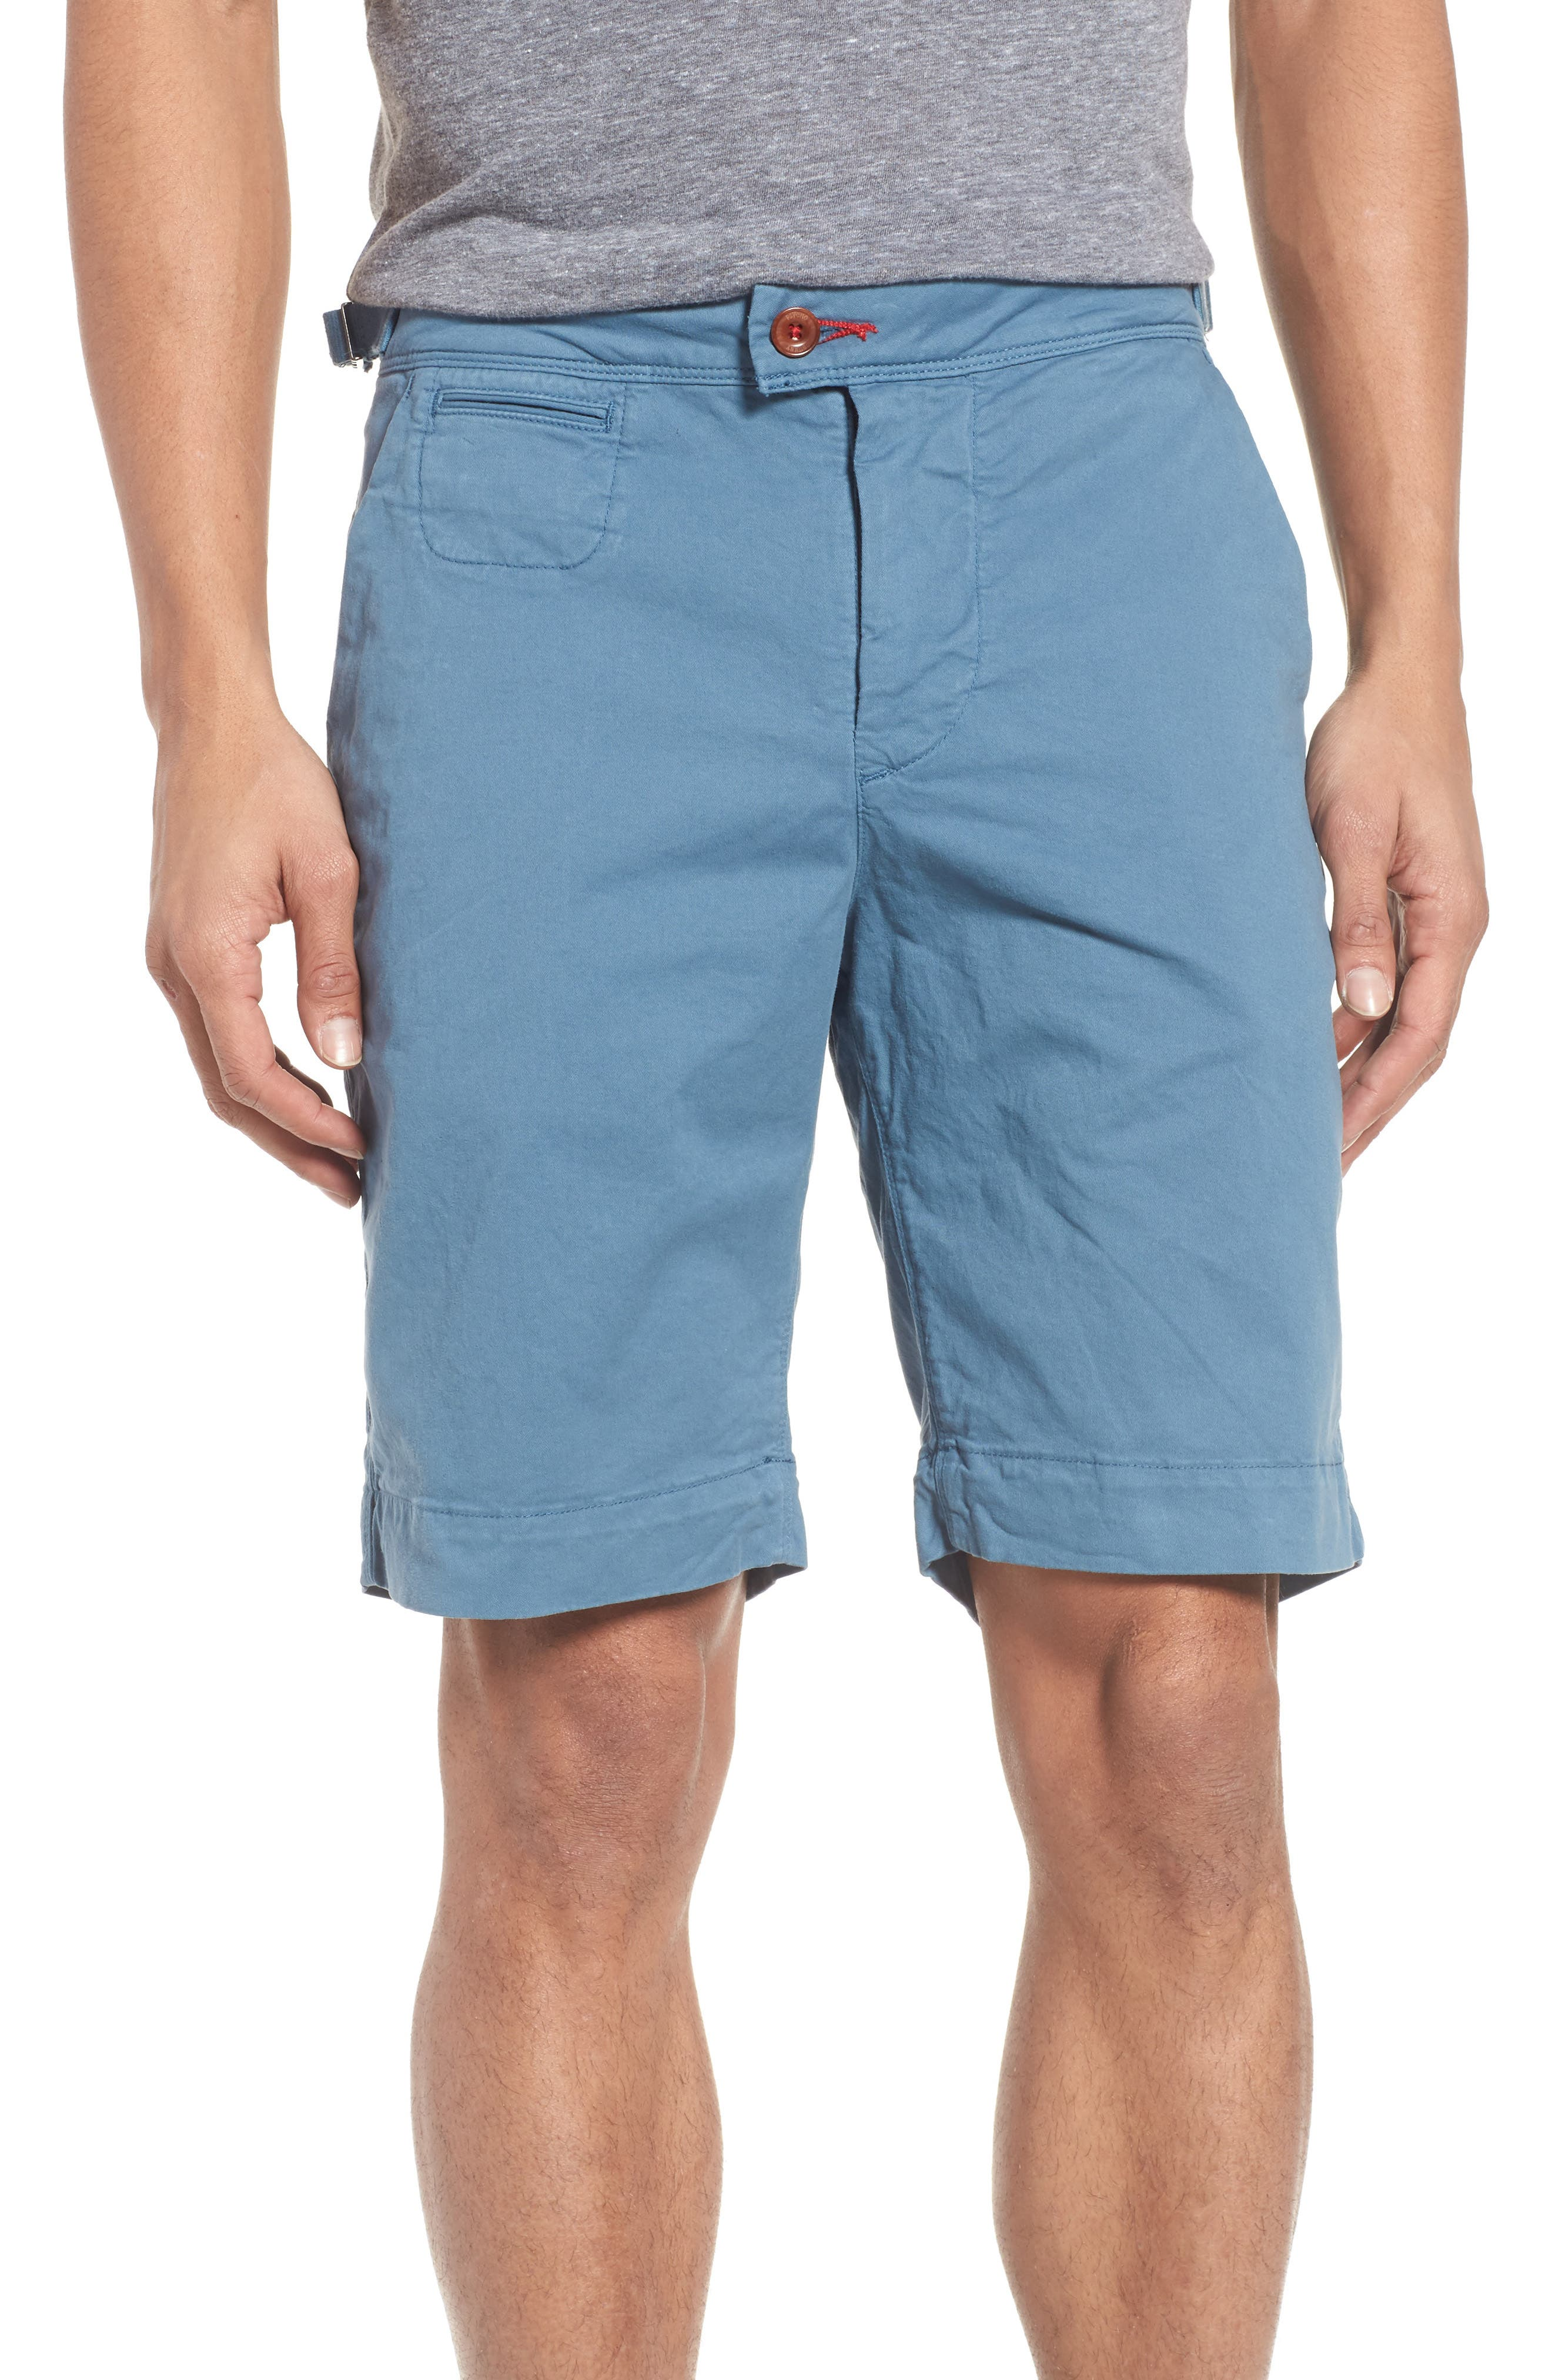 Triumph Shorts,                             Main thumbnail 1, color,                             Tidal